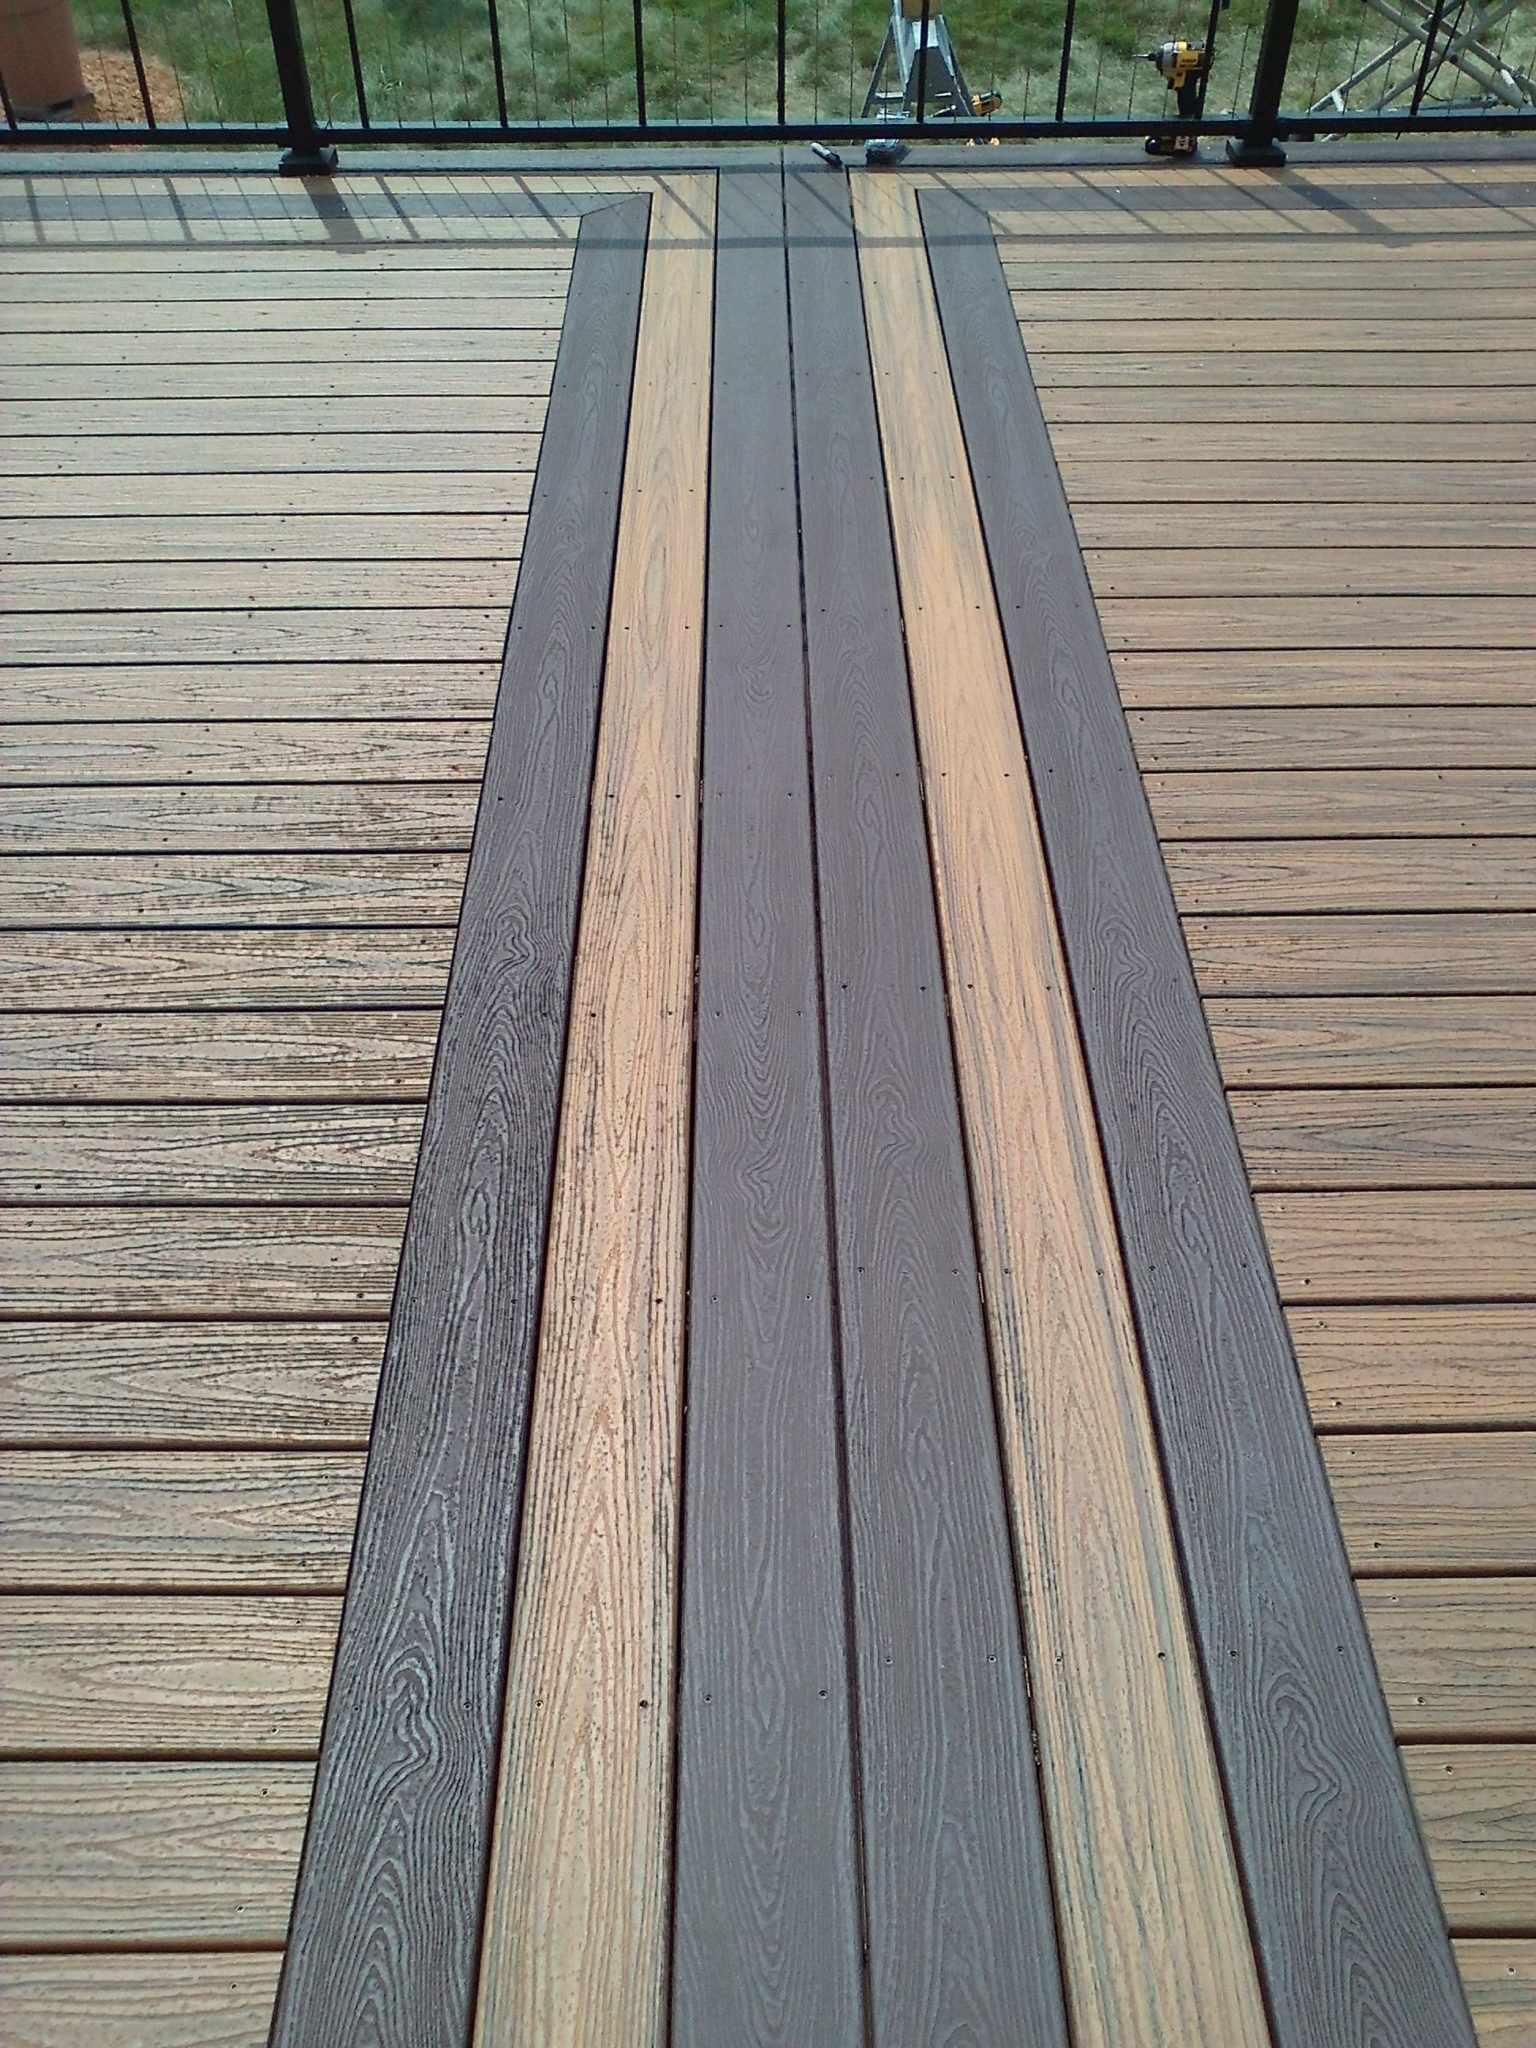 mankato-deck-and-railing-142006